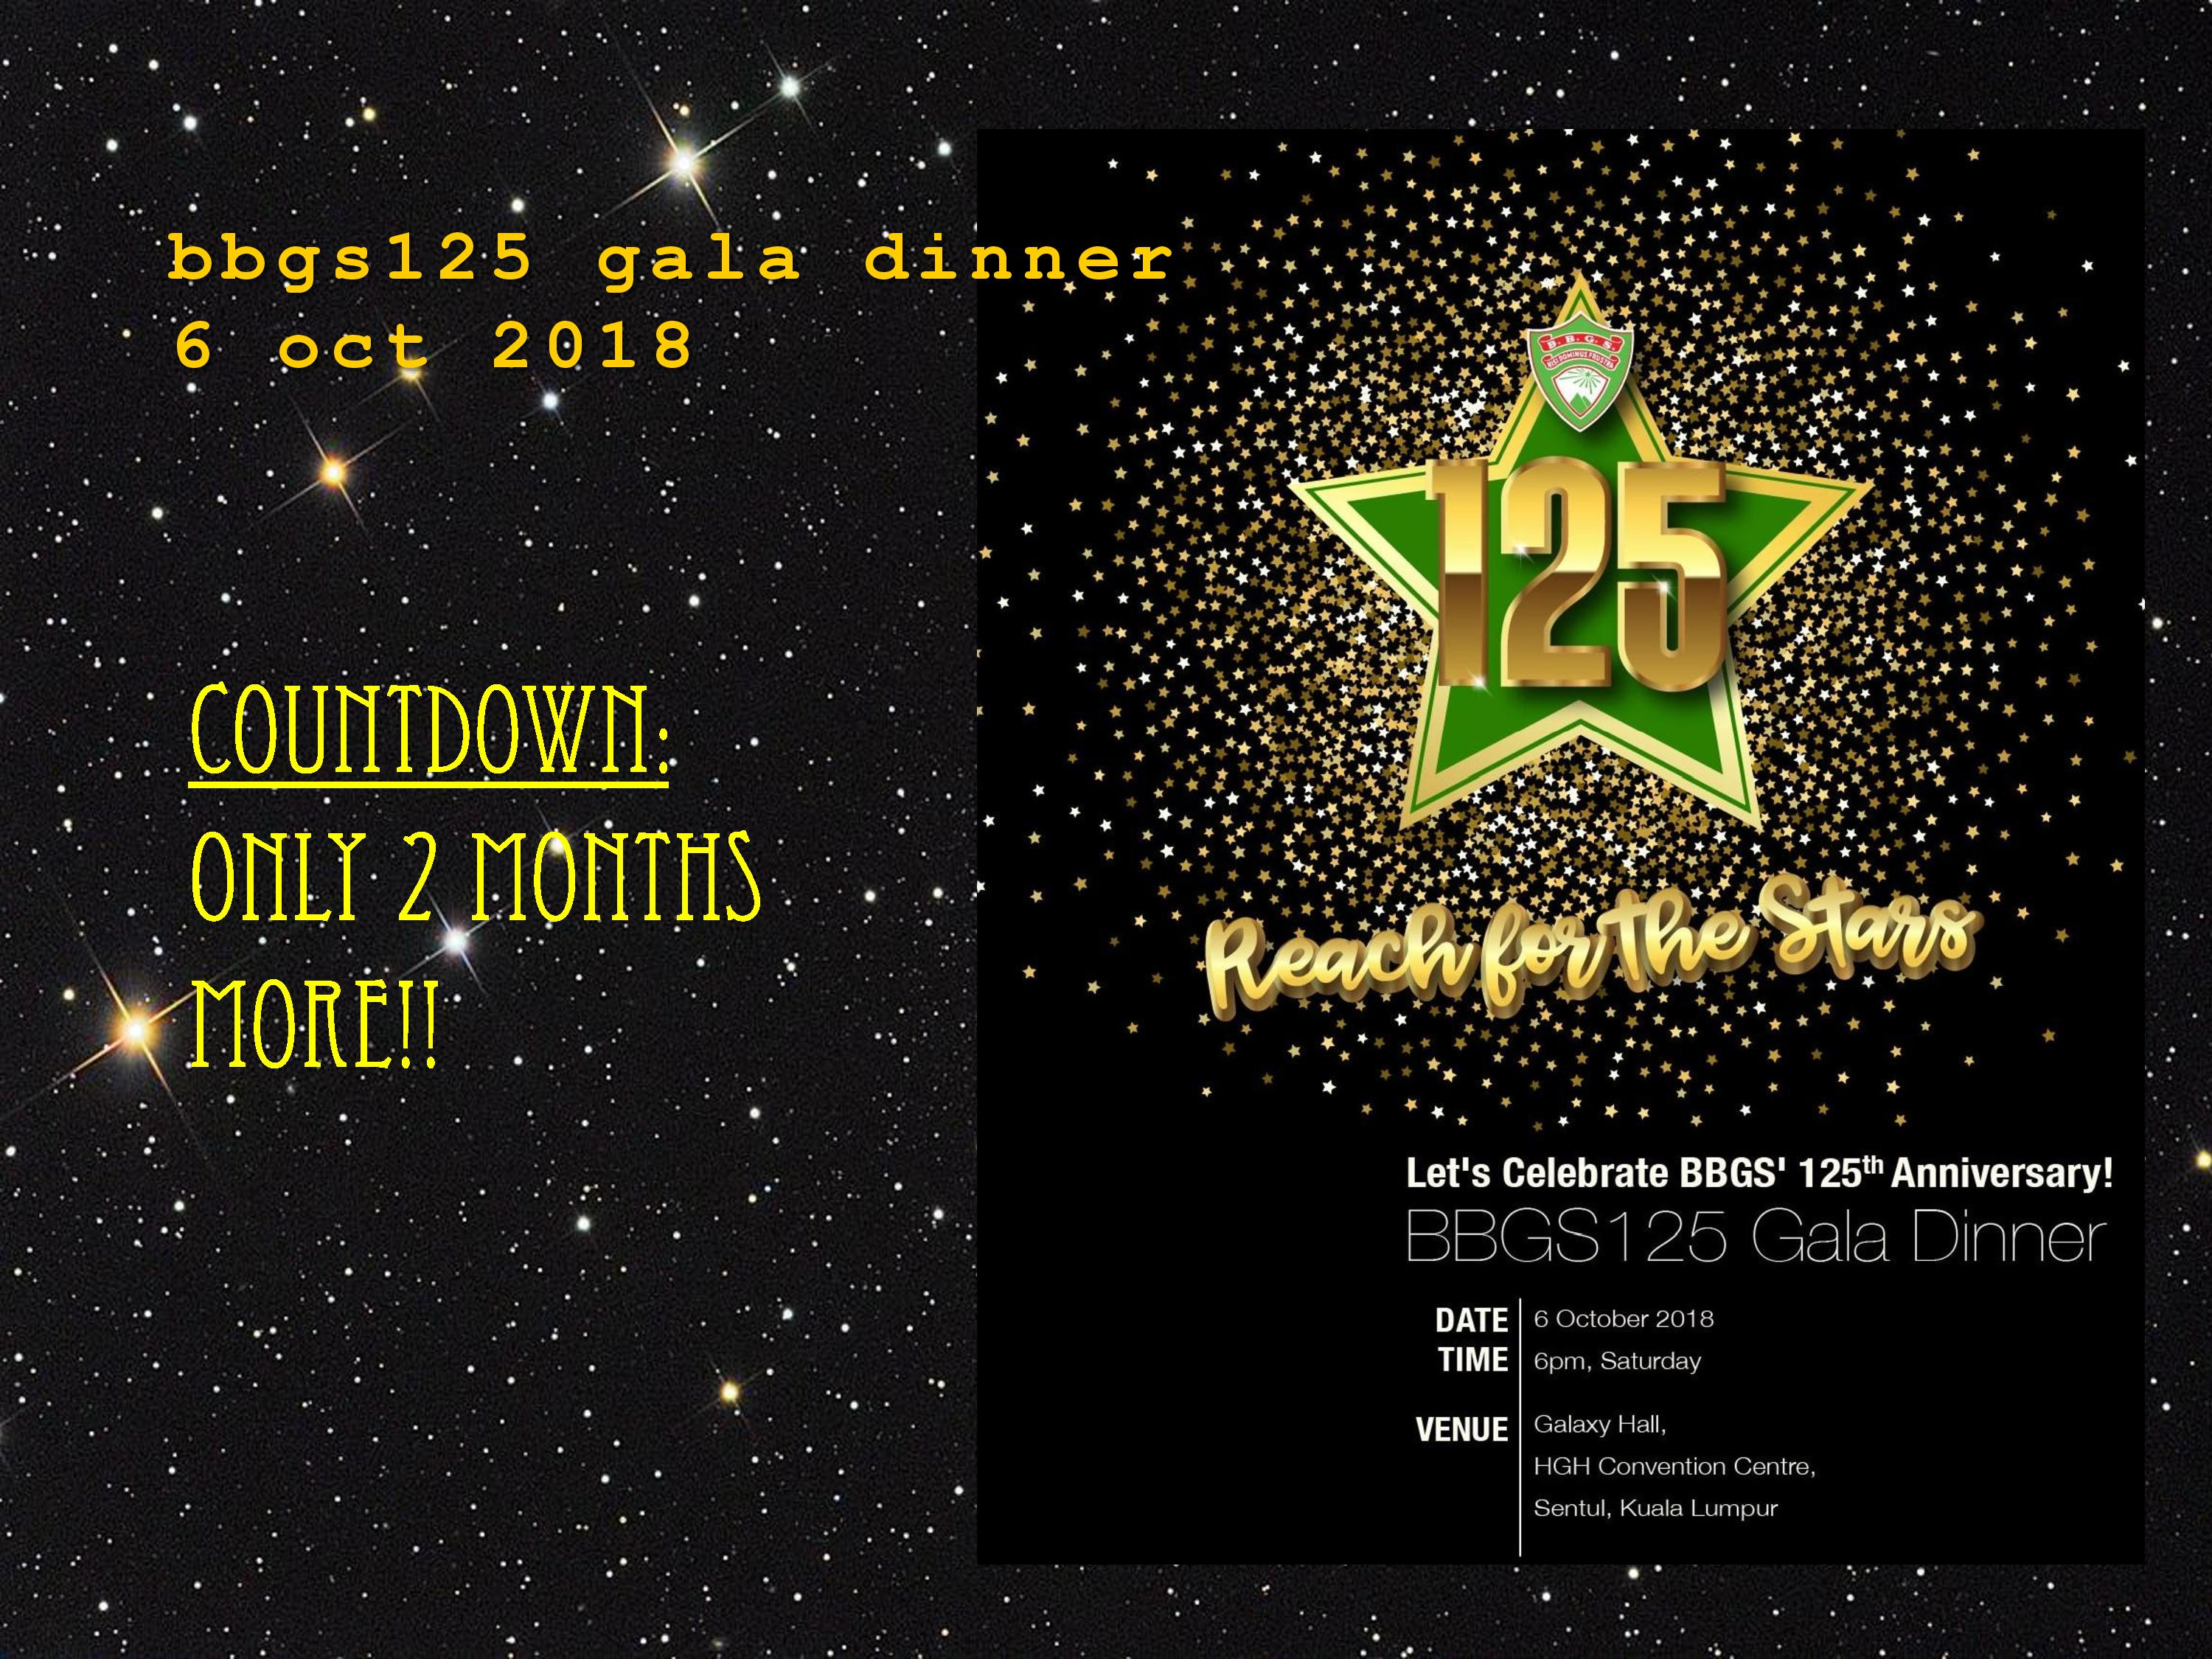 BBGS125 Gala Dinner-Countdown only 2 months more!